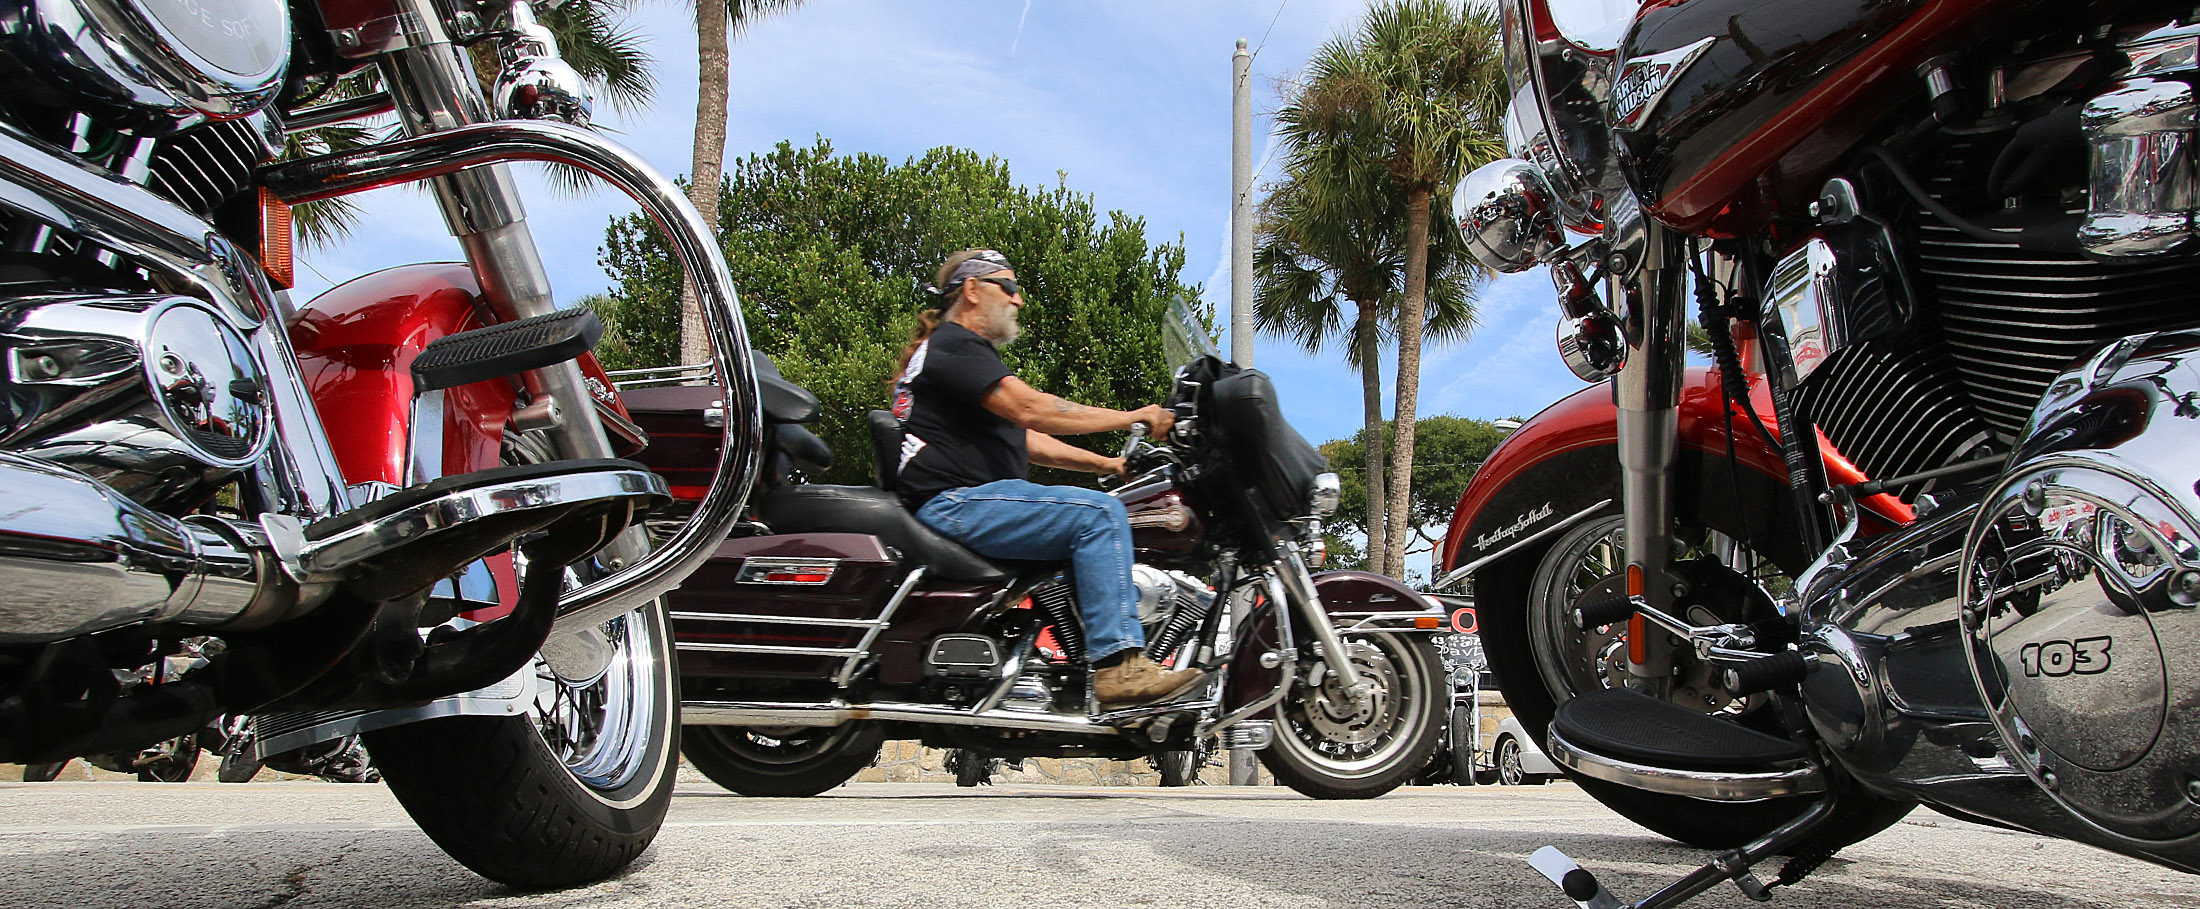 Bikers cruise past parked bike on Main Street as Biketoberfest rolls into day 2 in Daytona Beach Friday  October 16, 2015. News-Journal/JIM TILLER